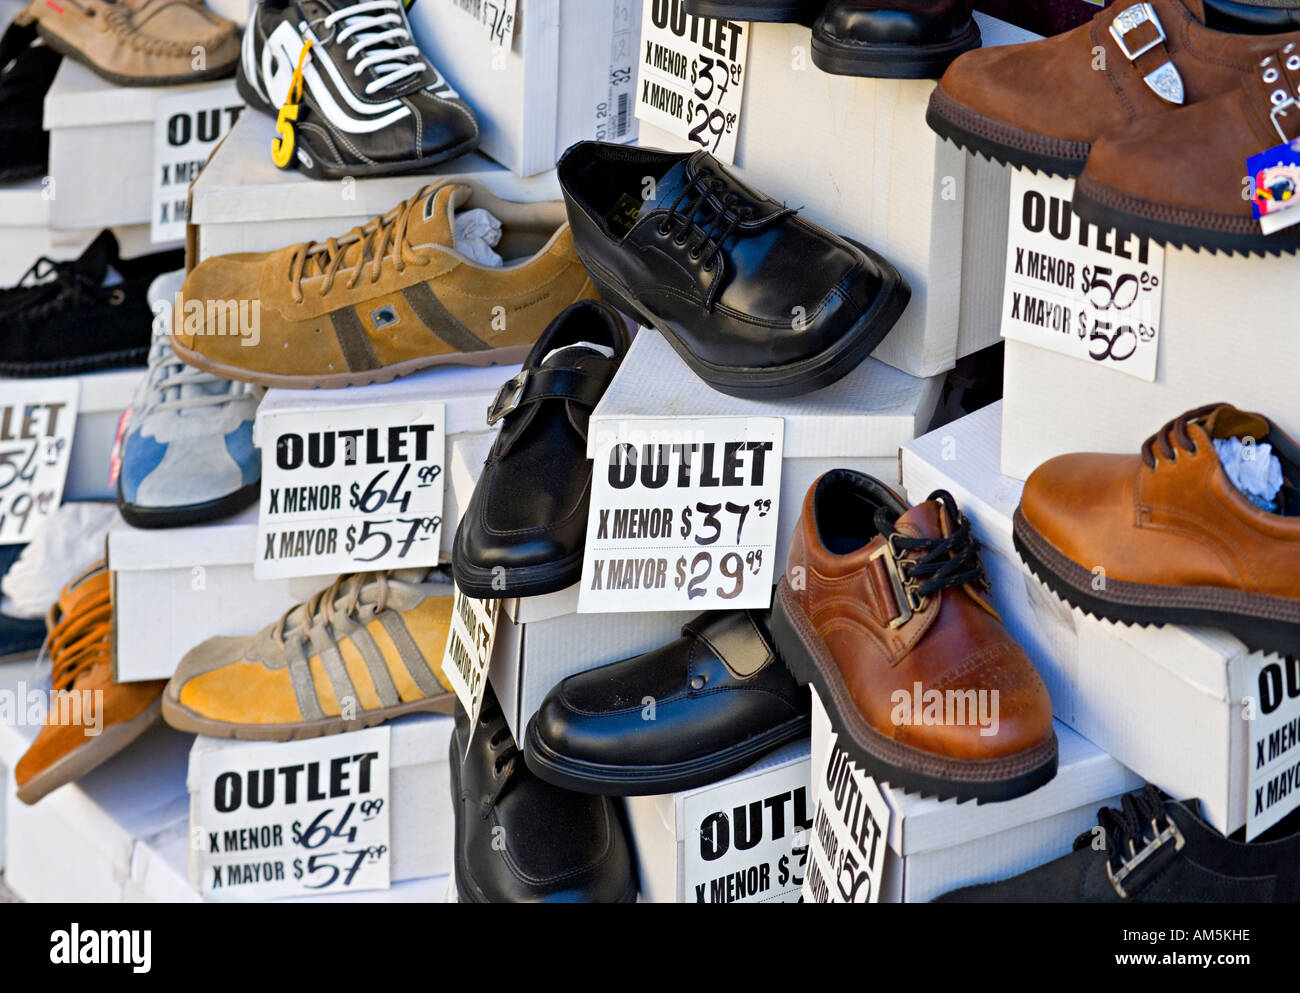 kinds of cheap shoes in a shop window